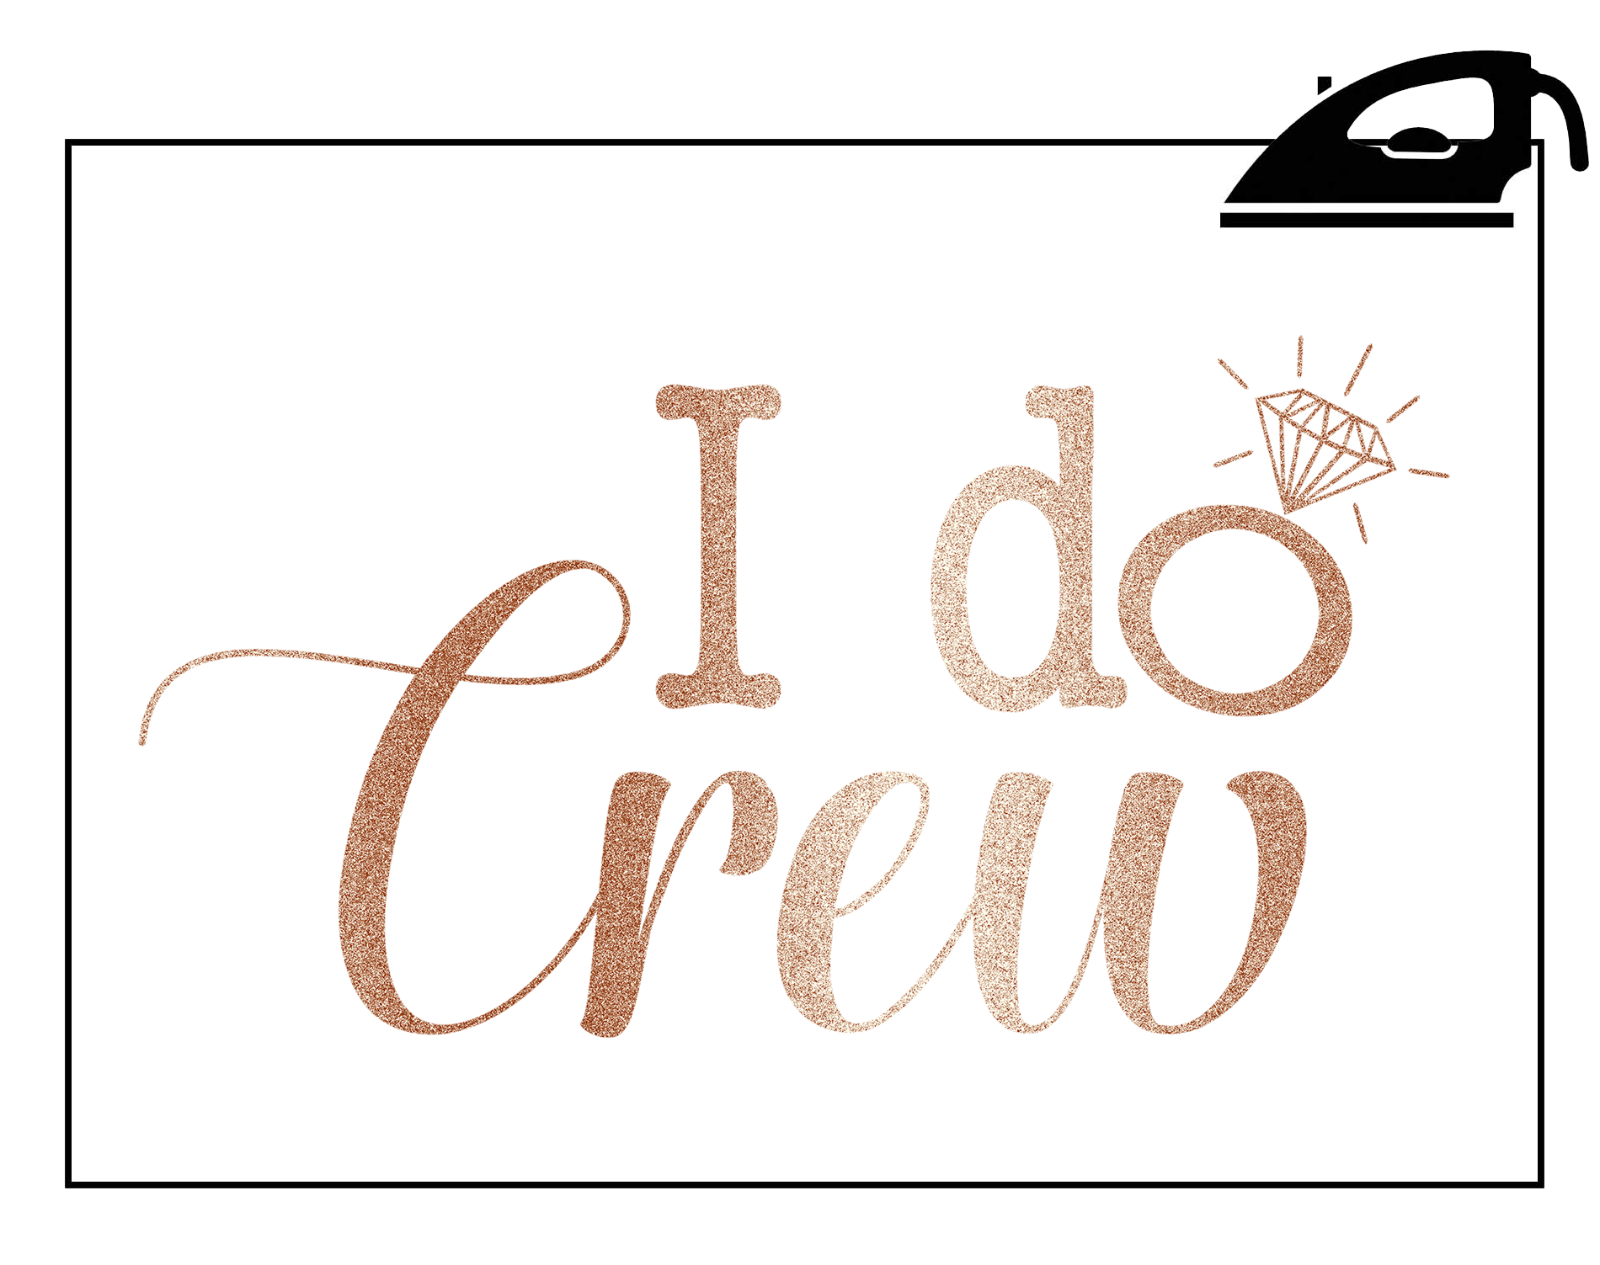 I Do Crew Hen Party Iron On T Shirt Transfer Bride To Be